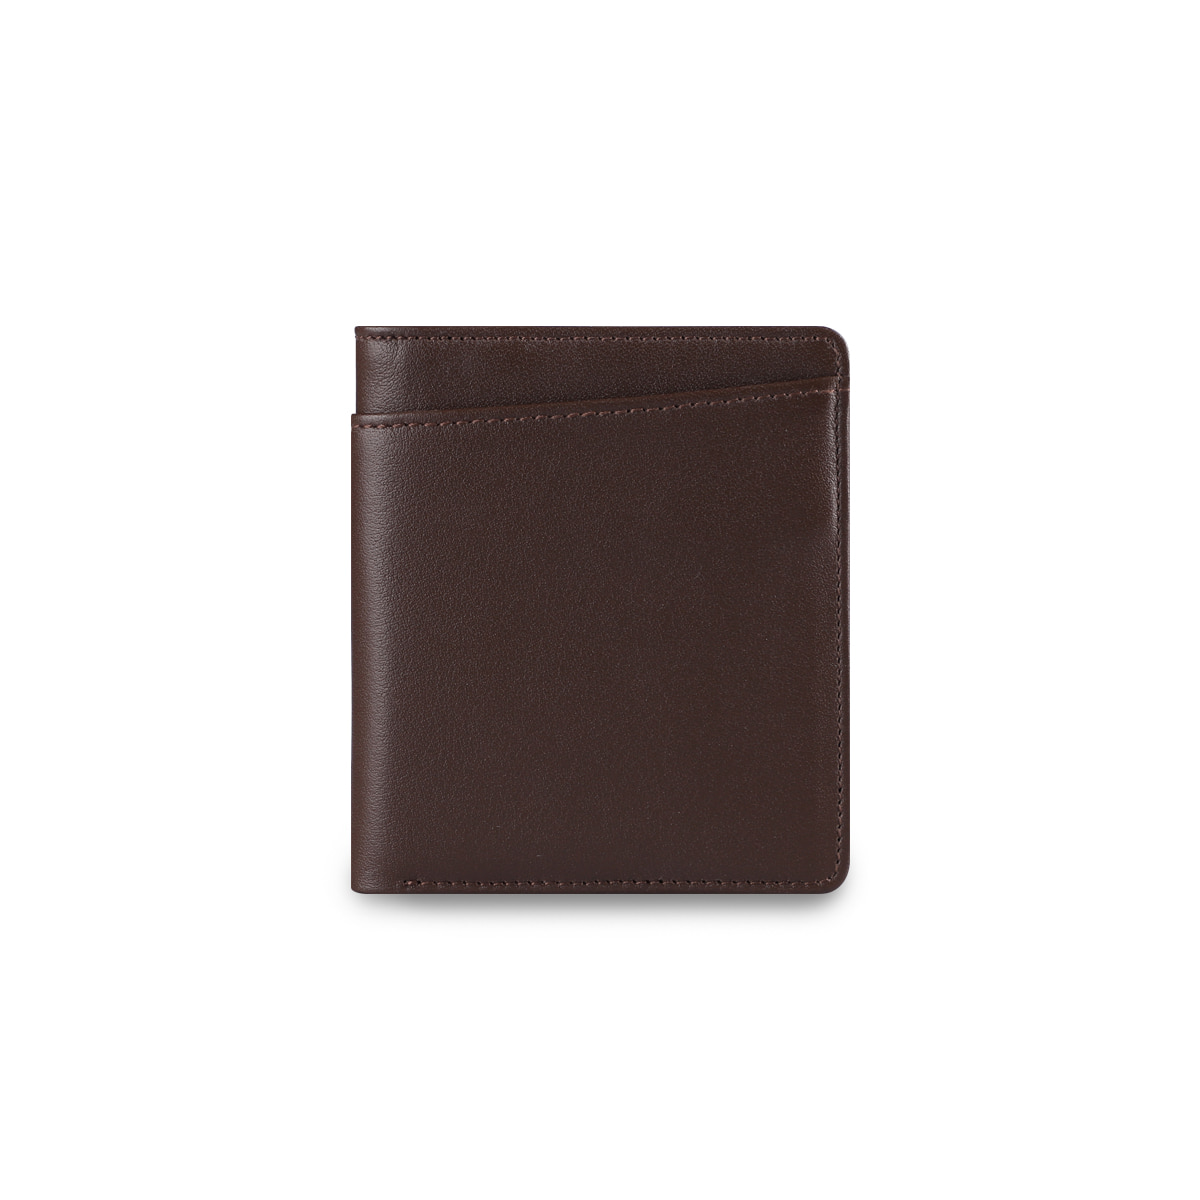 THE CITY WALLET BROWN